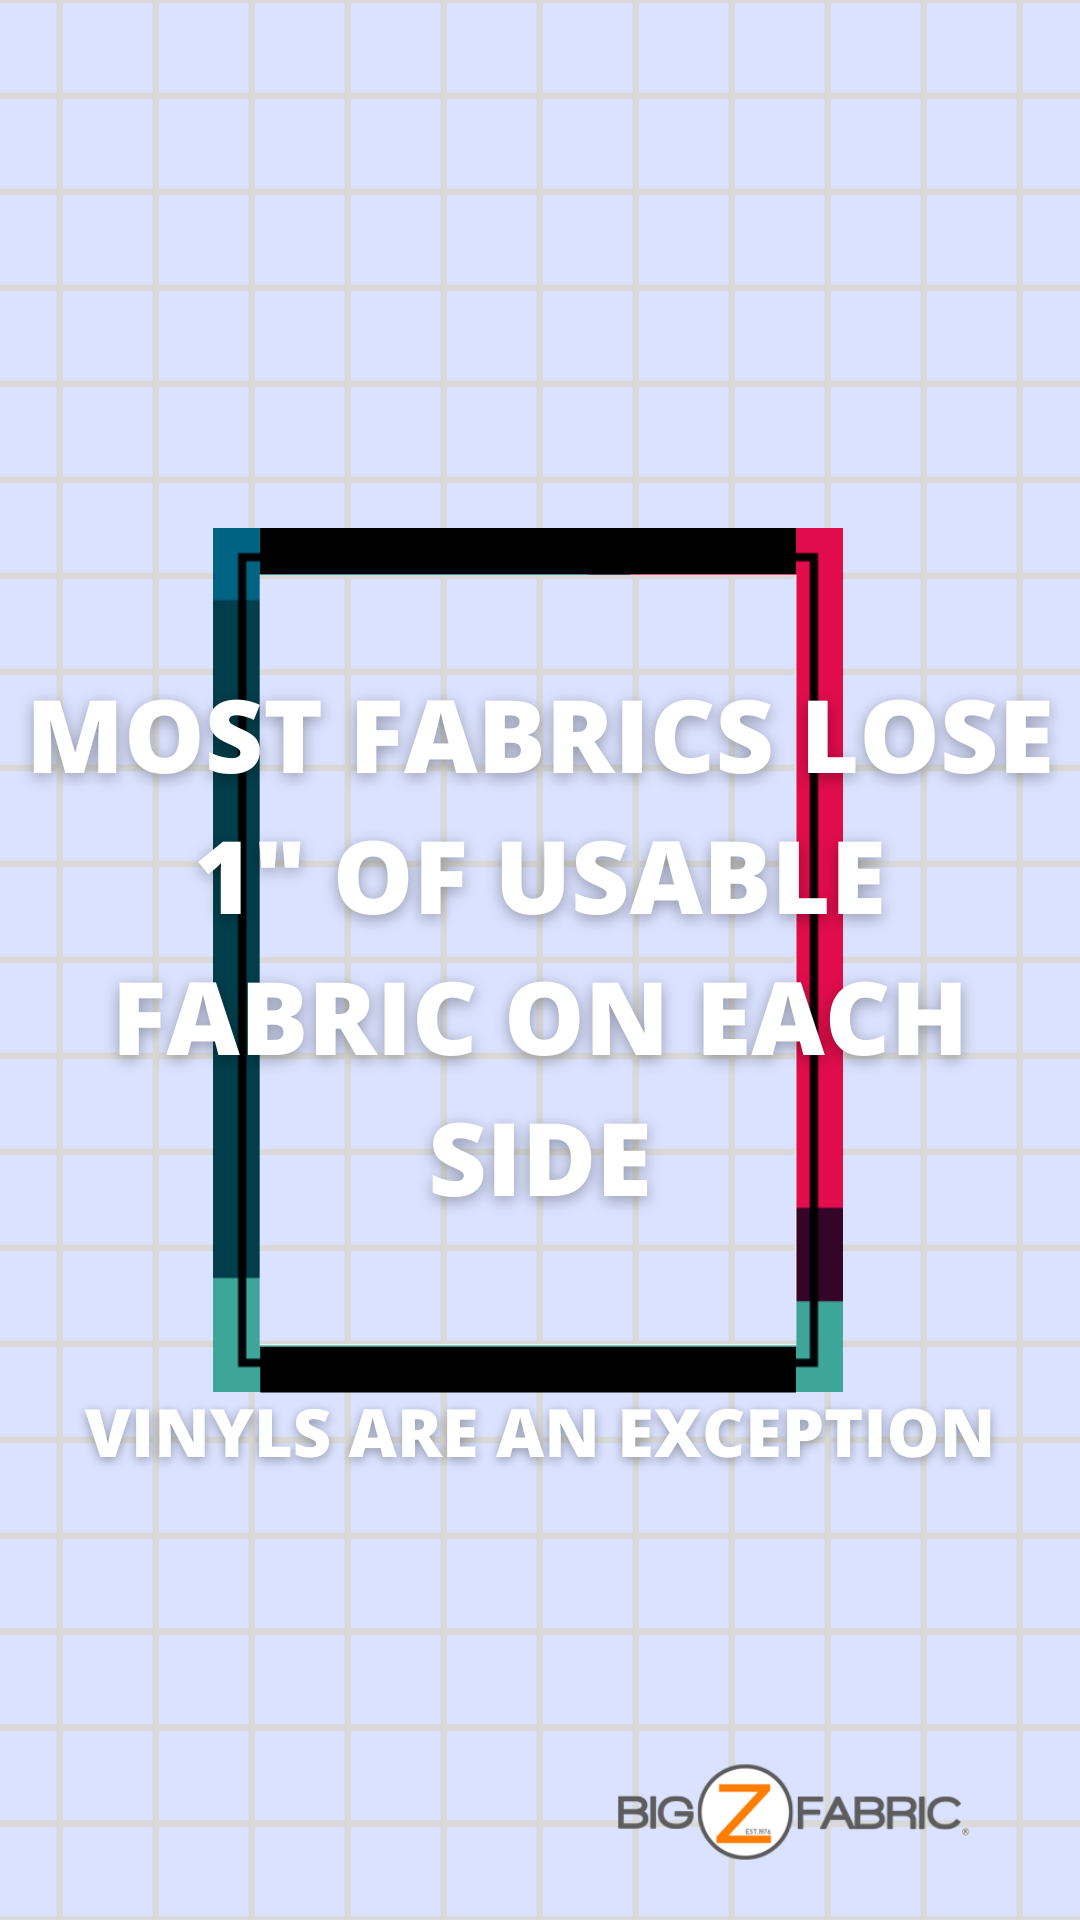 most fabrics loses 1 inch of width